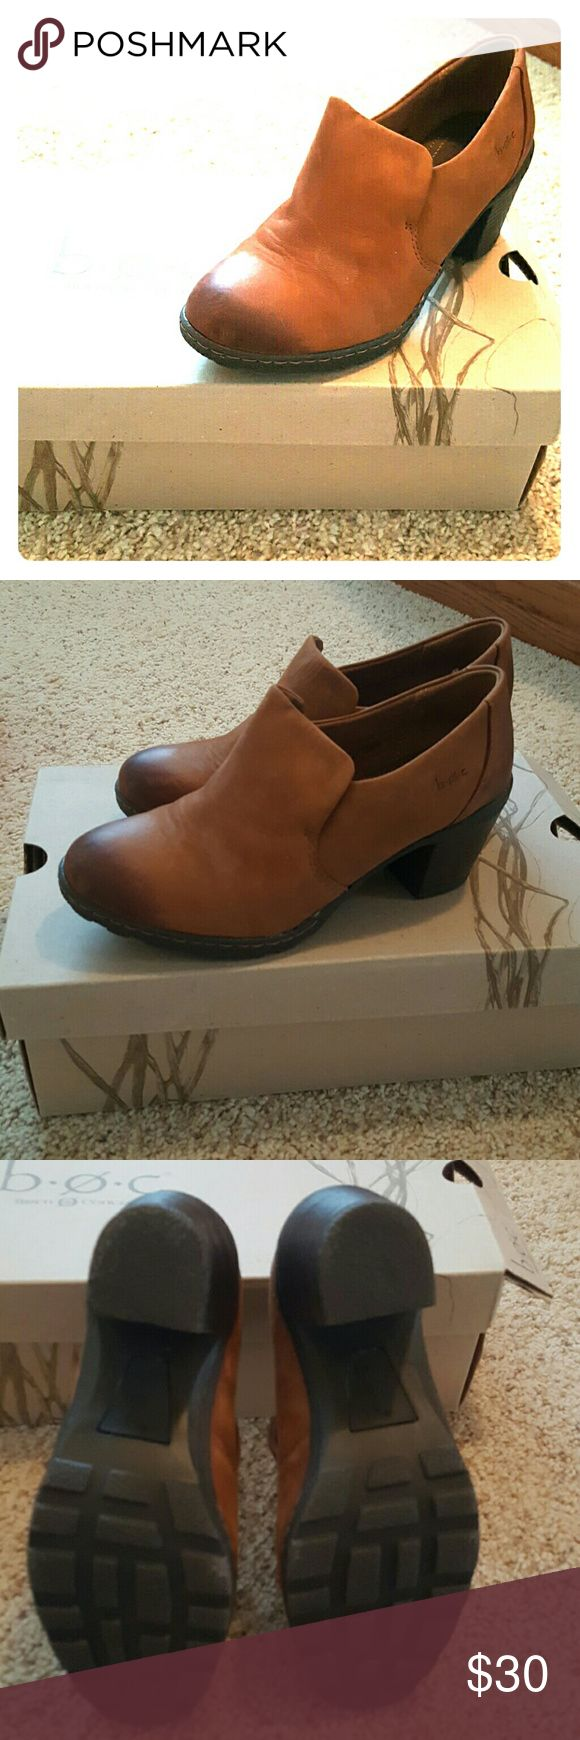 BOC BROWN SUEDE BOOTIES Brown suede, 2 inch heal. Like new with box. Worn once. Born Shoes Ankle Boots & Booties